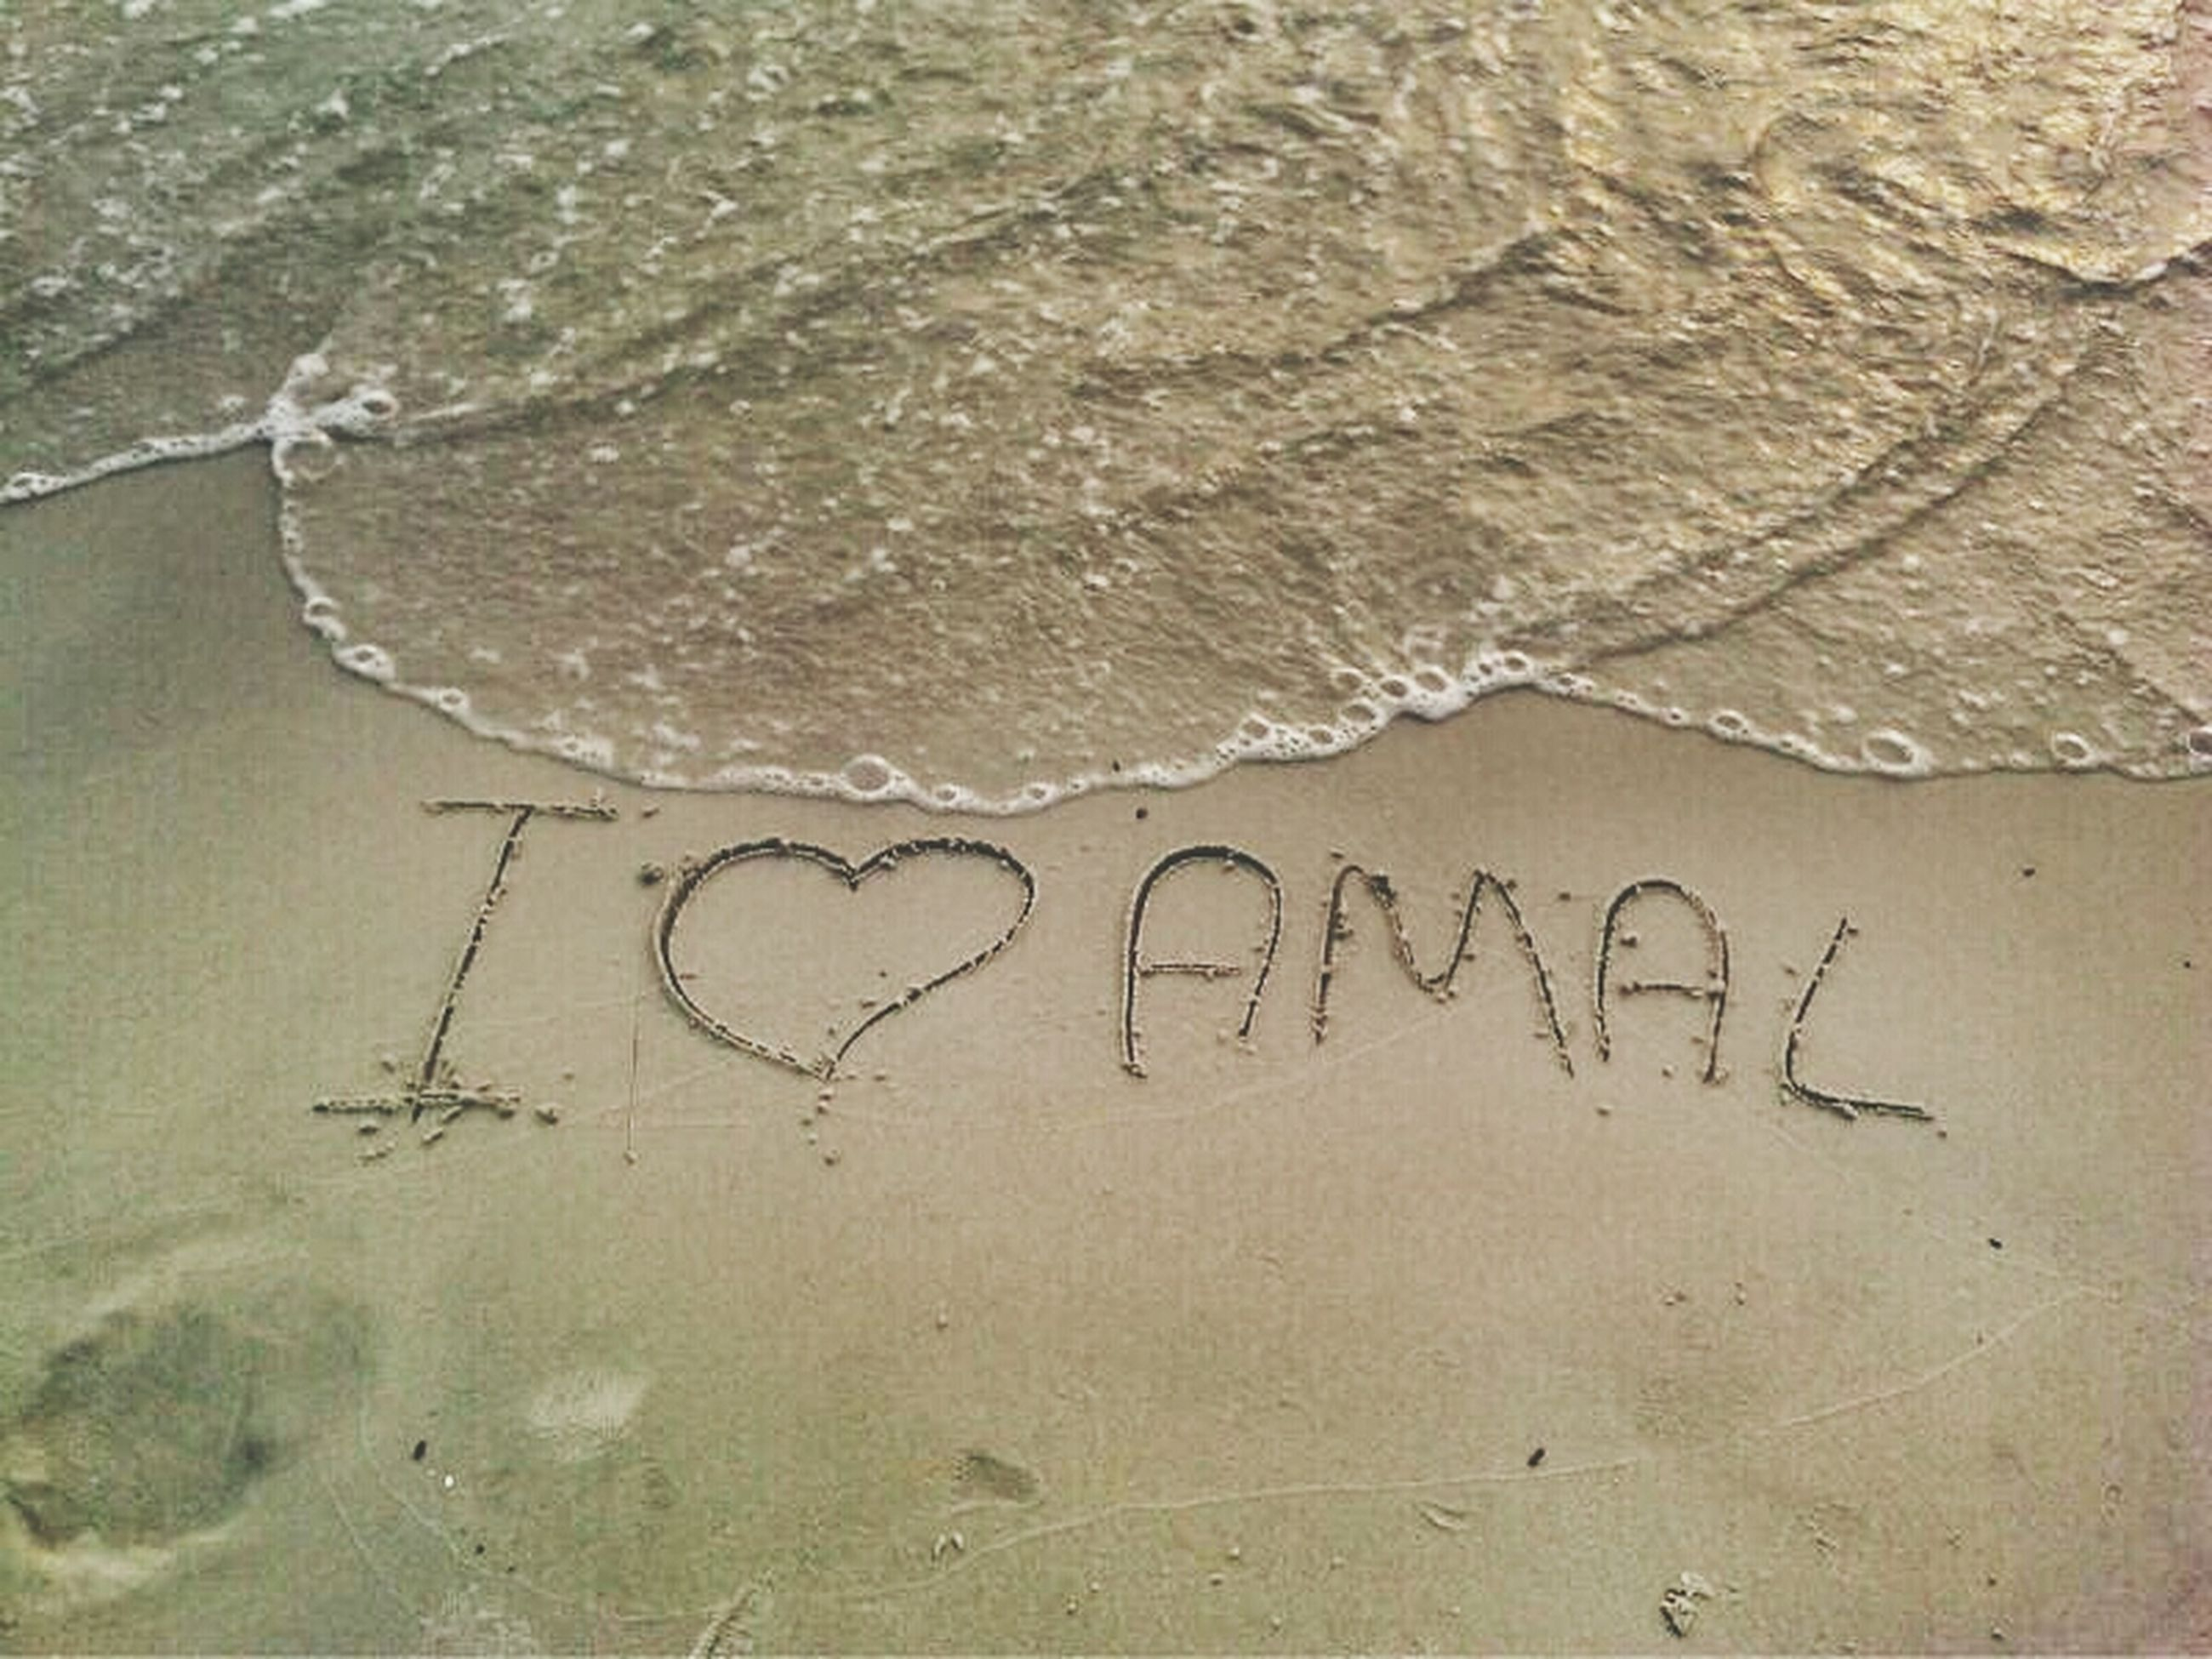 text, western script, high angle view, communication, sand, beach, heart shape, day, water, love, close-up, outdoors, capital letter, message, no people, nature, creativity, footprint, art, art and craft